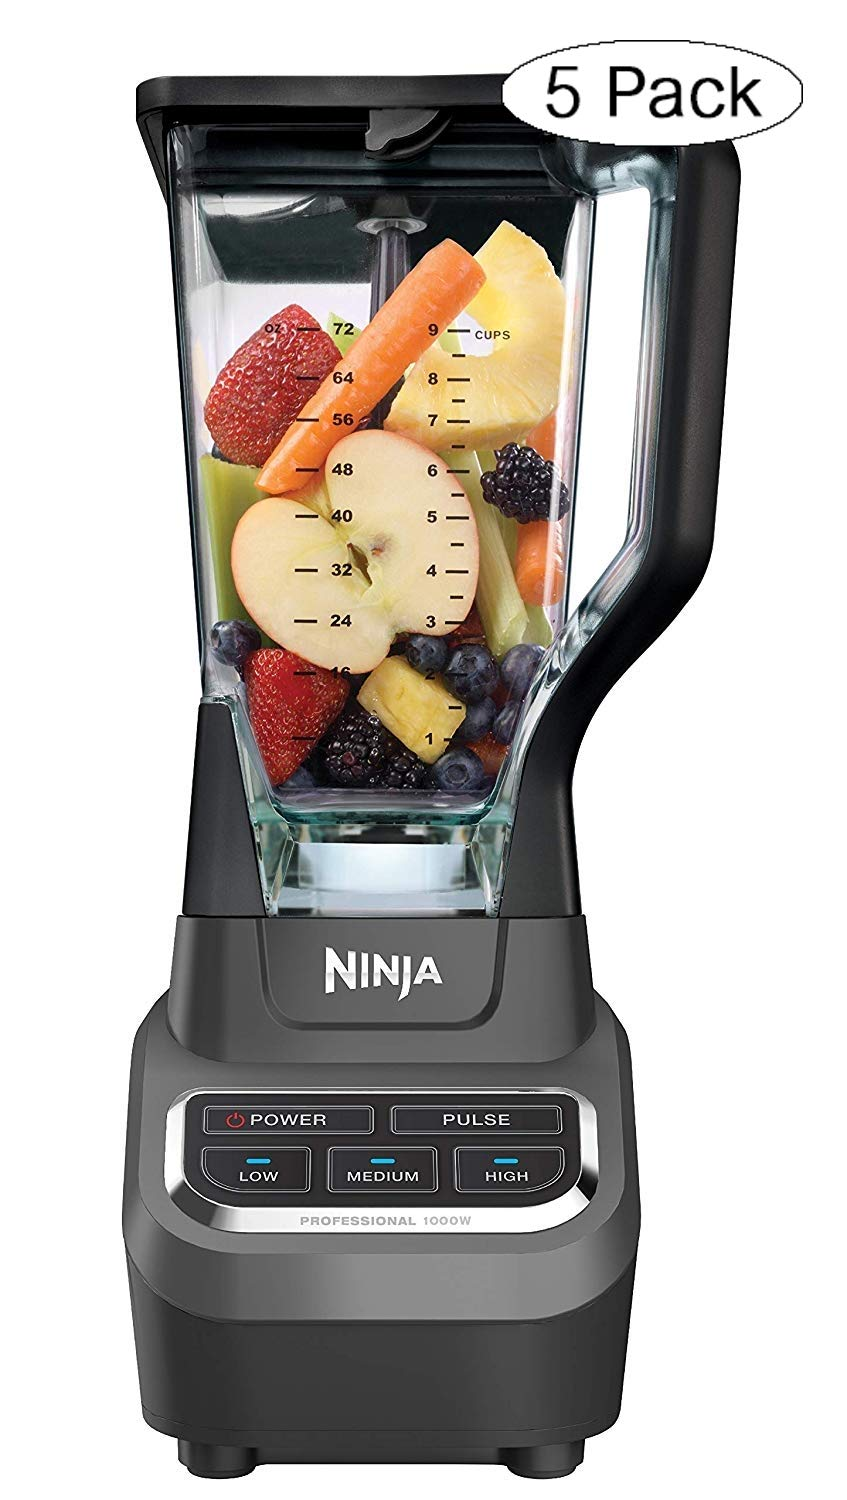 Ninja Professional 72oz Countertop Blender with 1000-Watt Base and Total Crushing Technology for Smoothies, Ice and Frozen Fruit (BL610), Black (Fivе Расk)